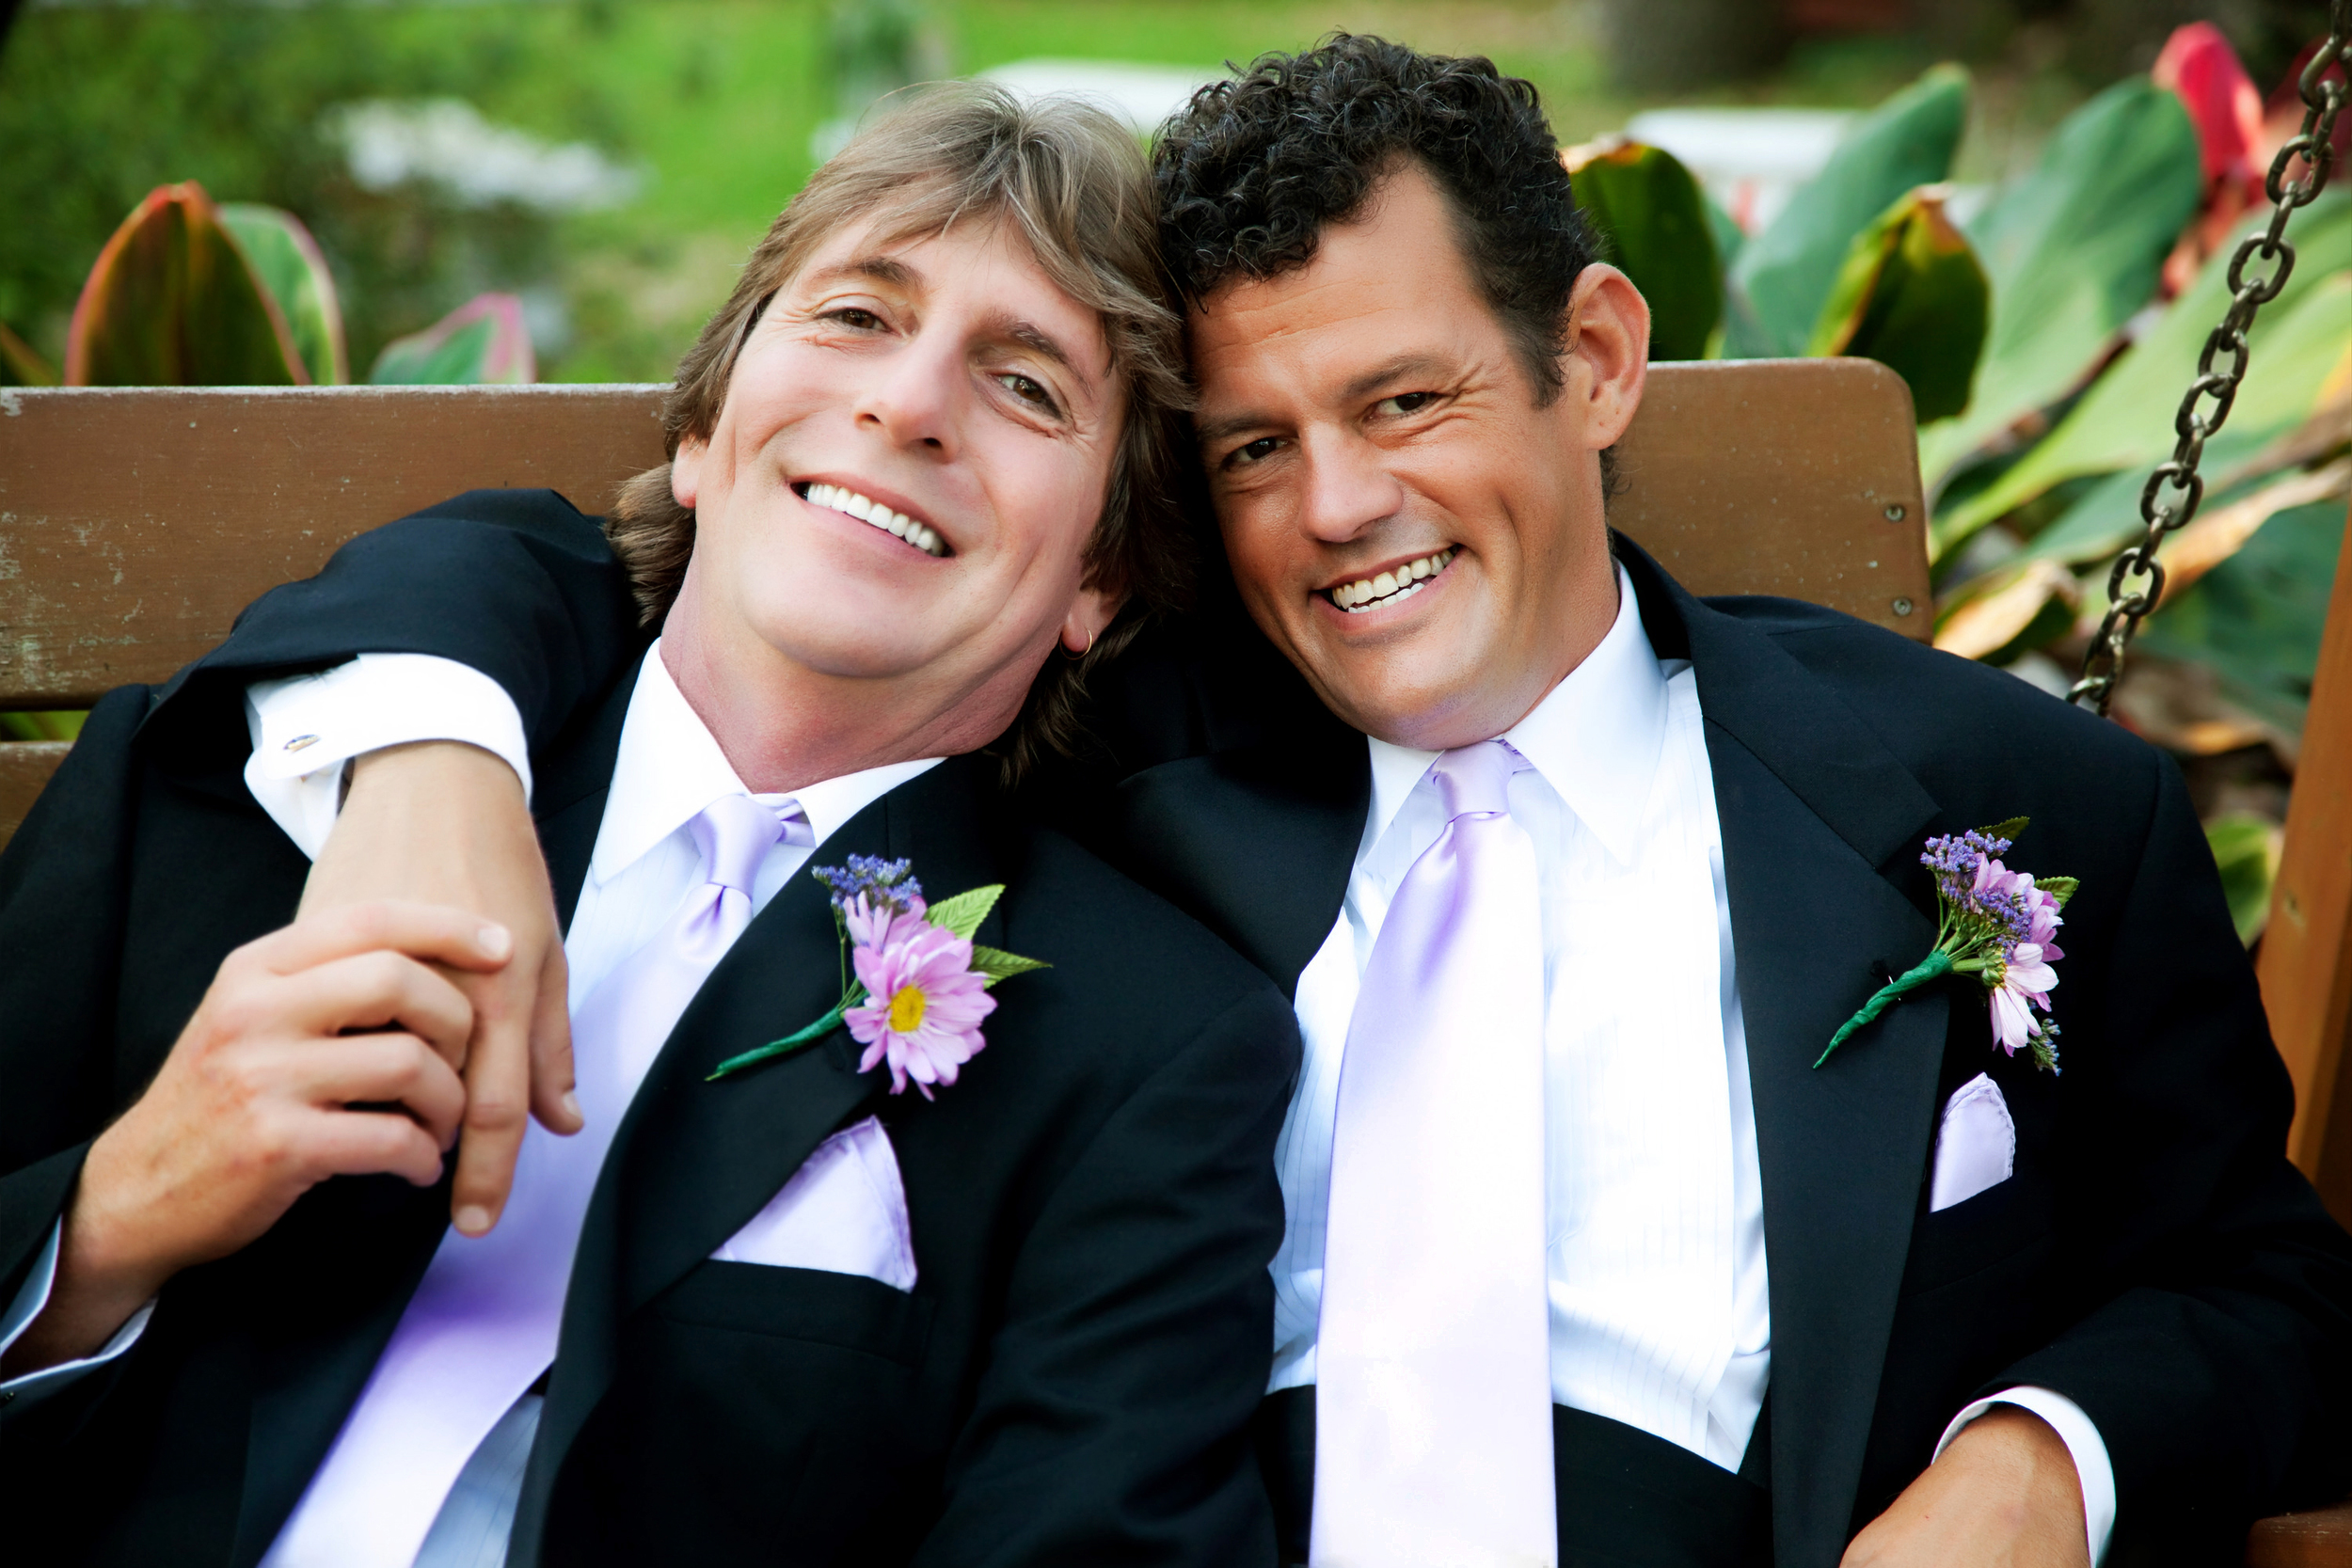 Lesbian-LGBT-handsome-gay-men-on-wedding-day-l.jpg